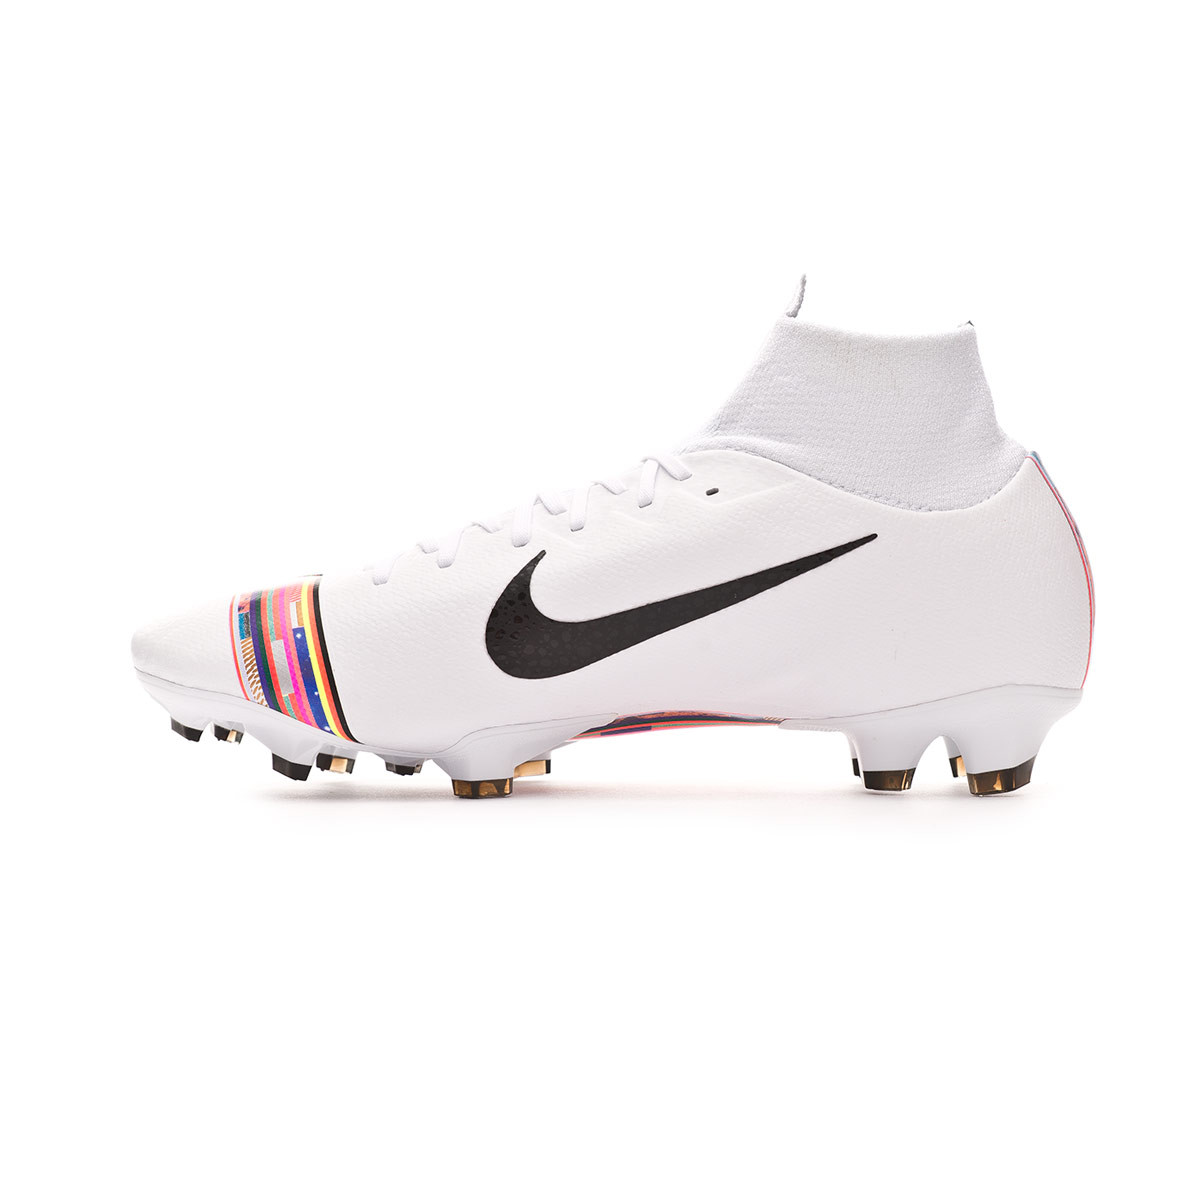 run shoes undefeated x recognized brands Nike Mercurial Superfly VI Pro LVL UP FG Football Boots